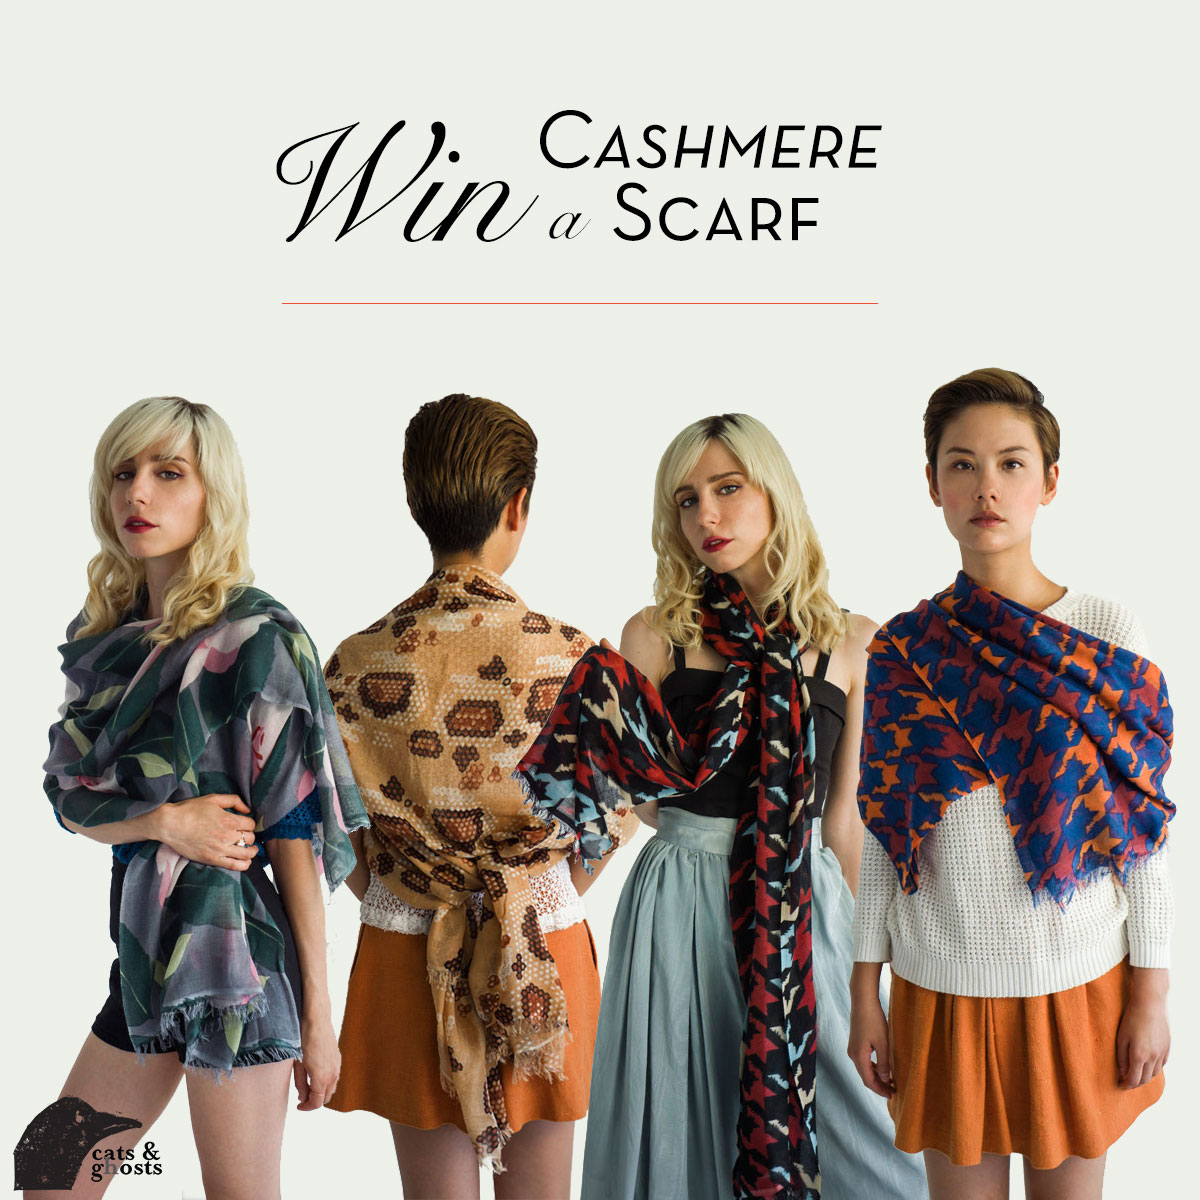 Win a Cashmere Scarf